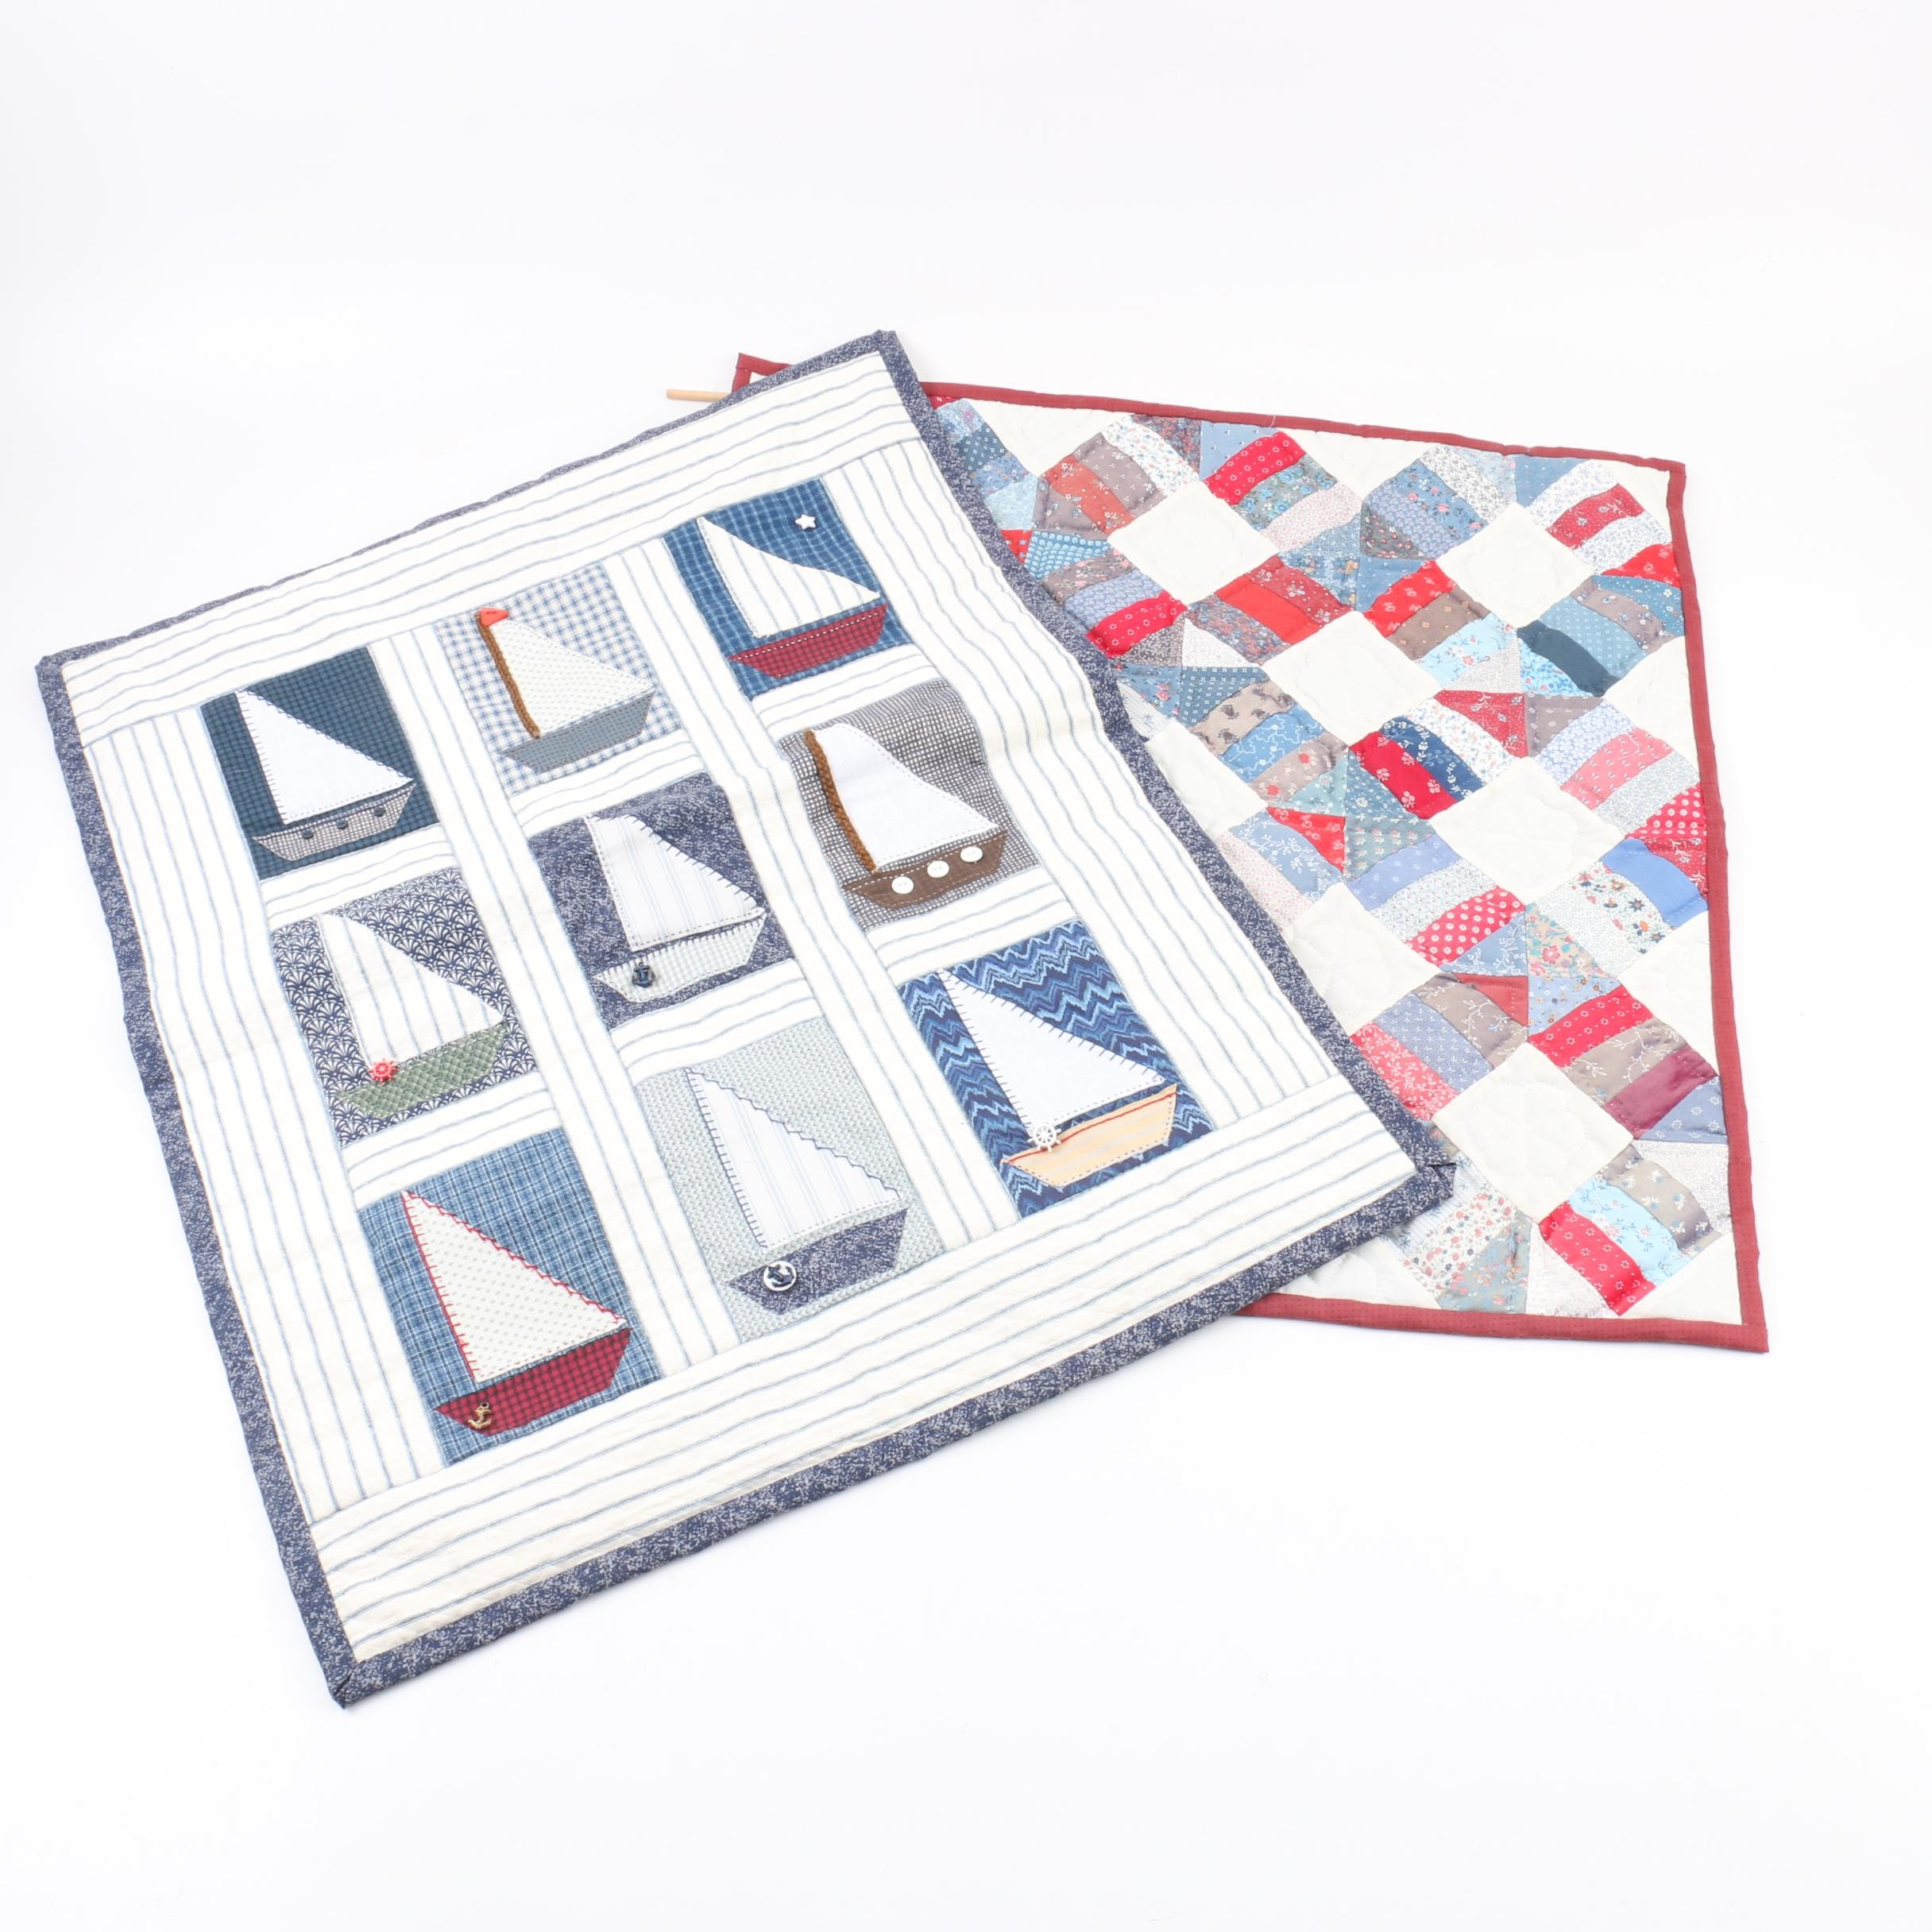 Handmade Quilted Panels